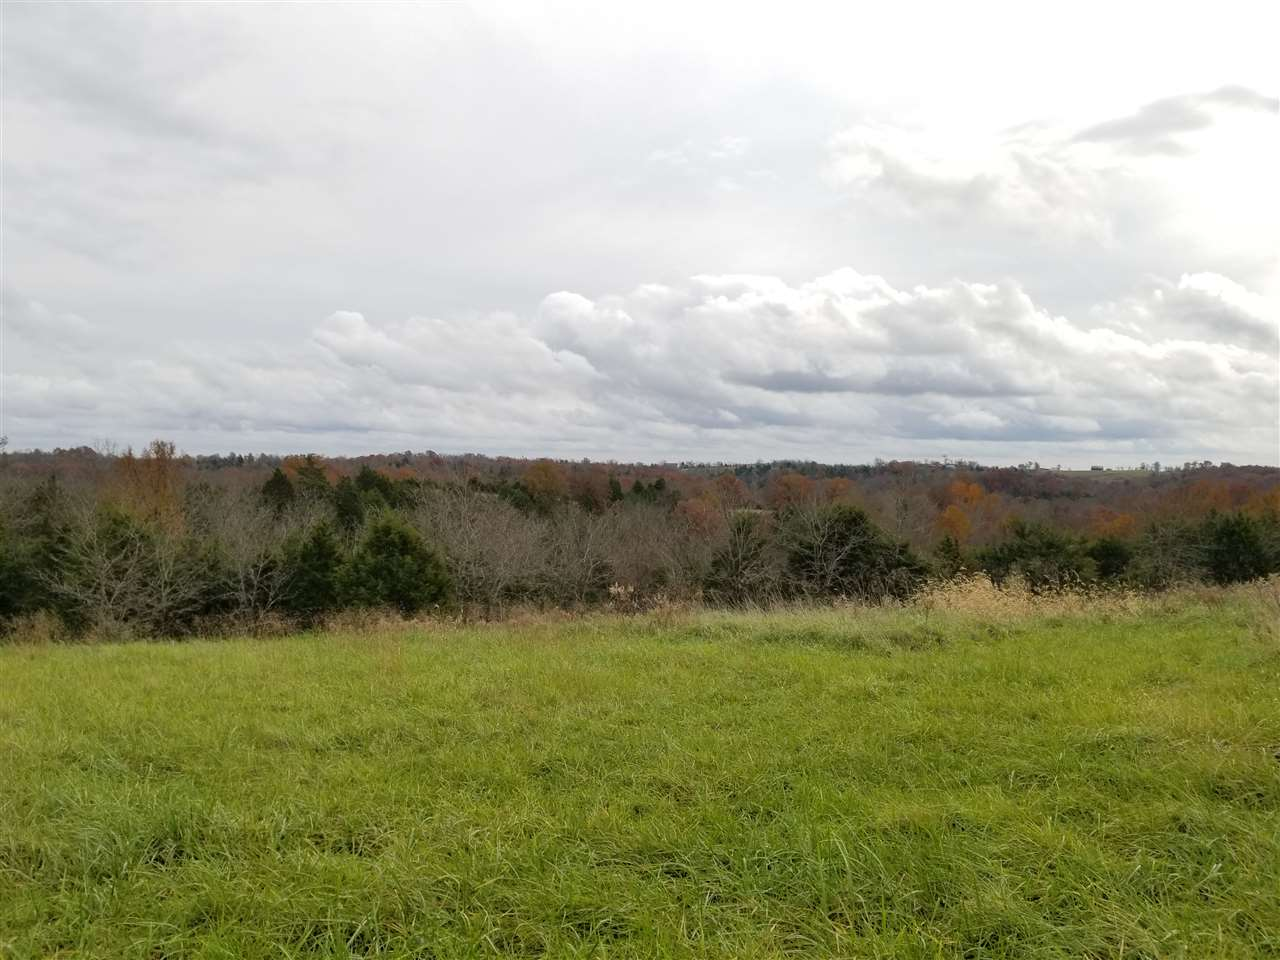 Looking for some land to hunt, fish, farm or build on? Then check out this 63 Acres on 2260 Hogg Ridge Road, Williamstown!